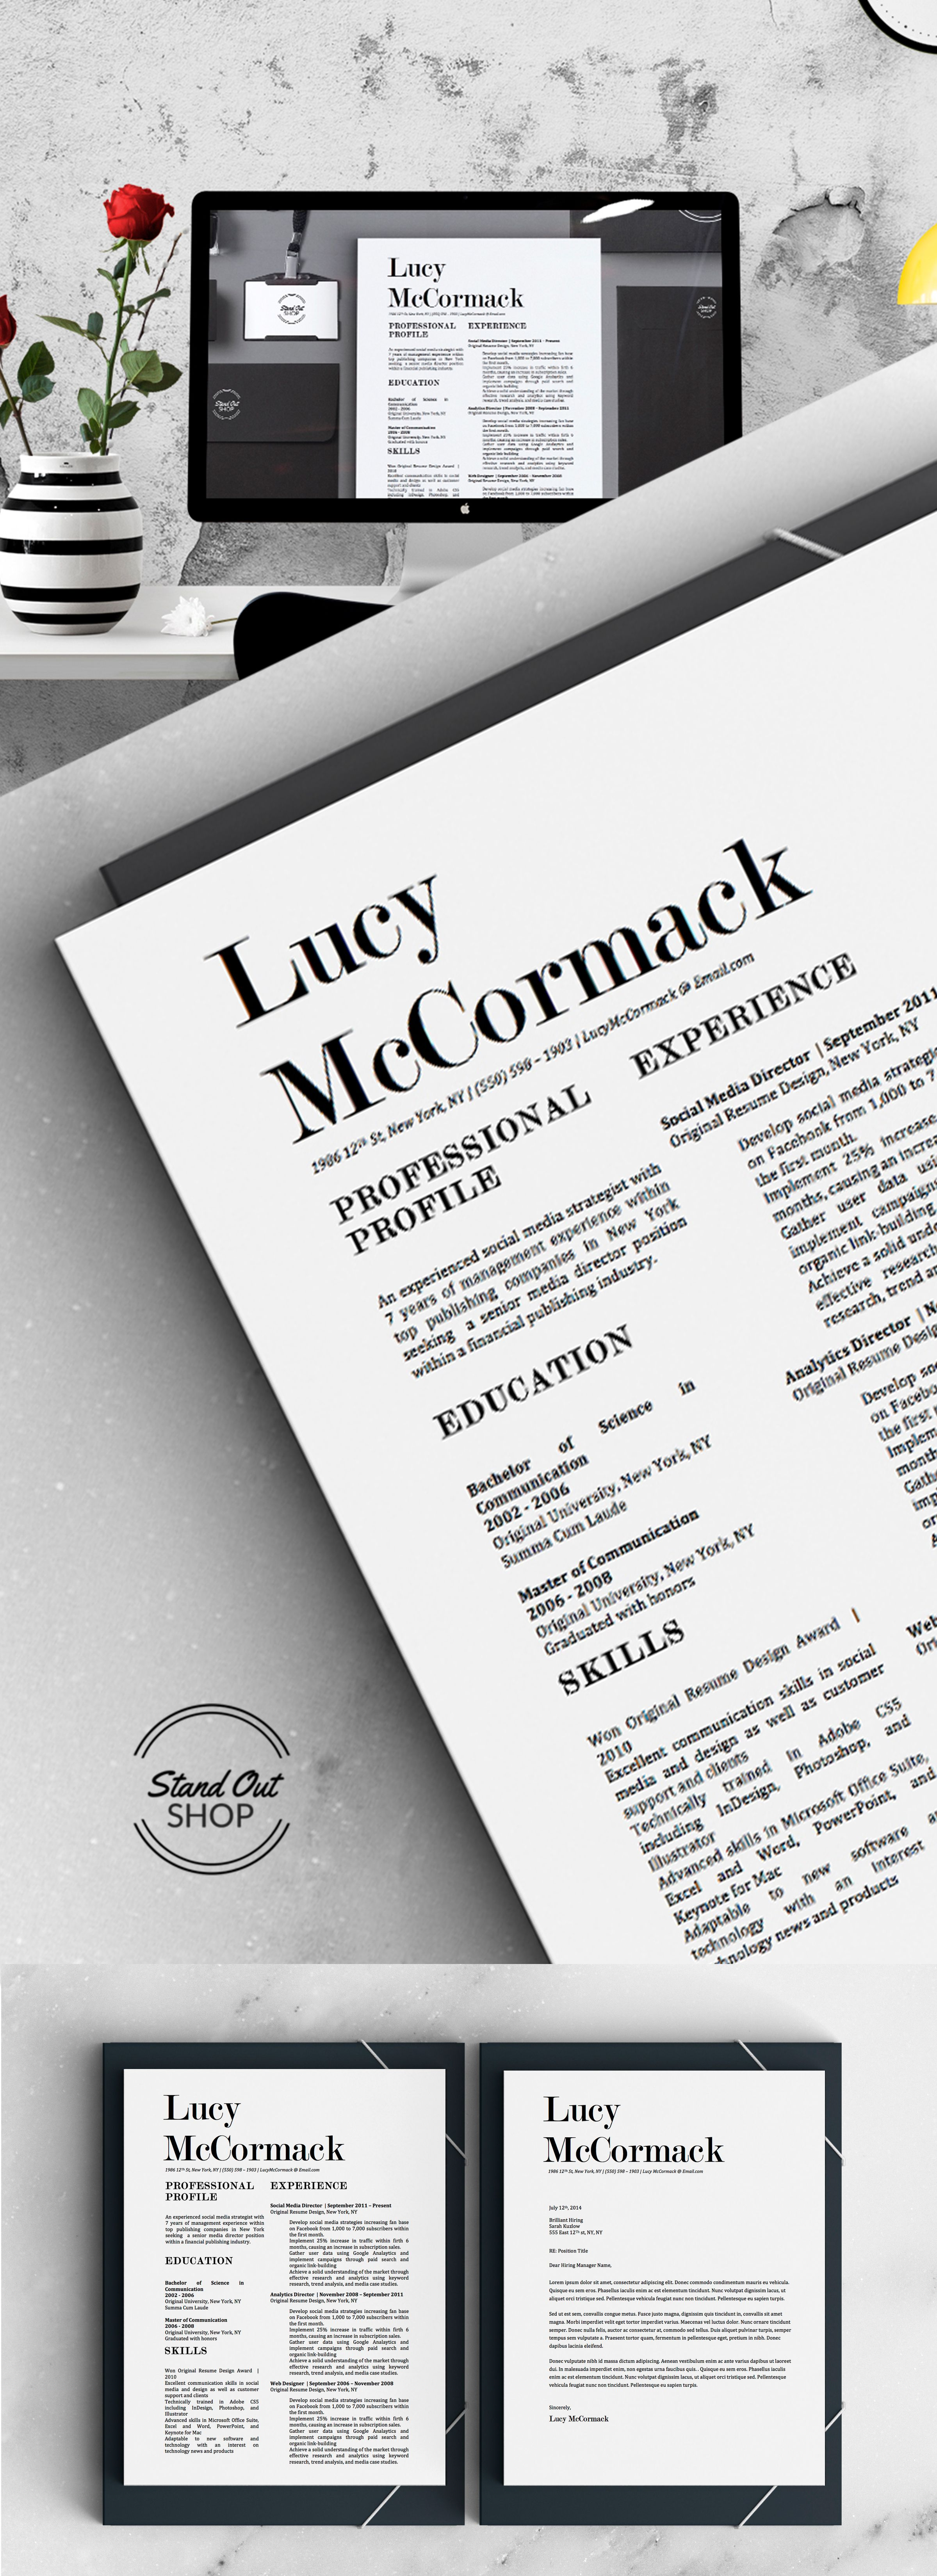 Modern Resume Design With Matching Cover Letter For